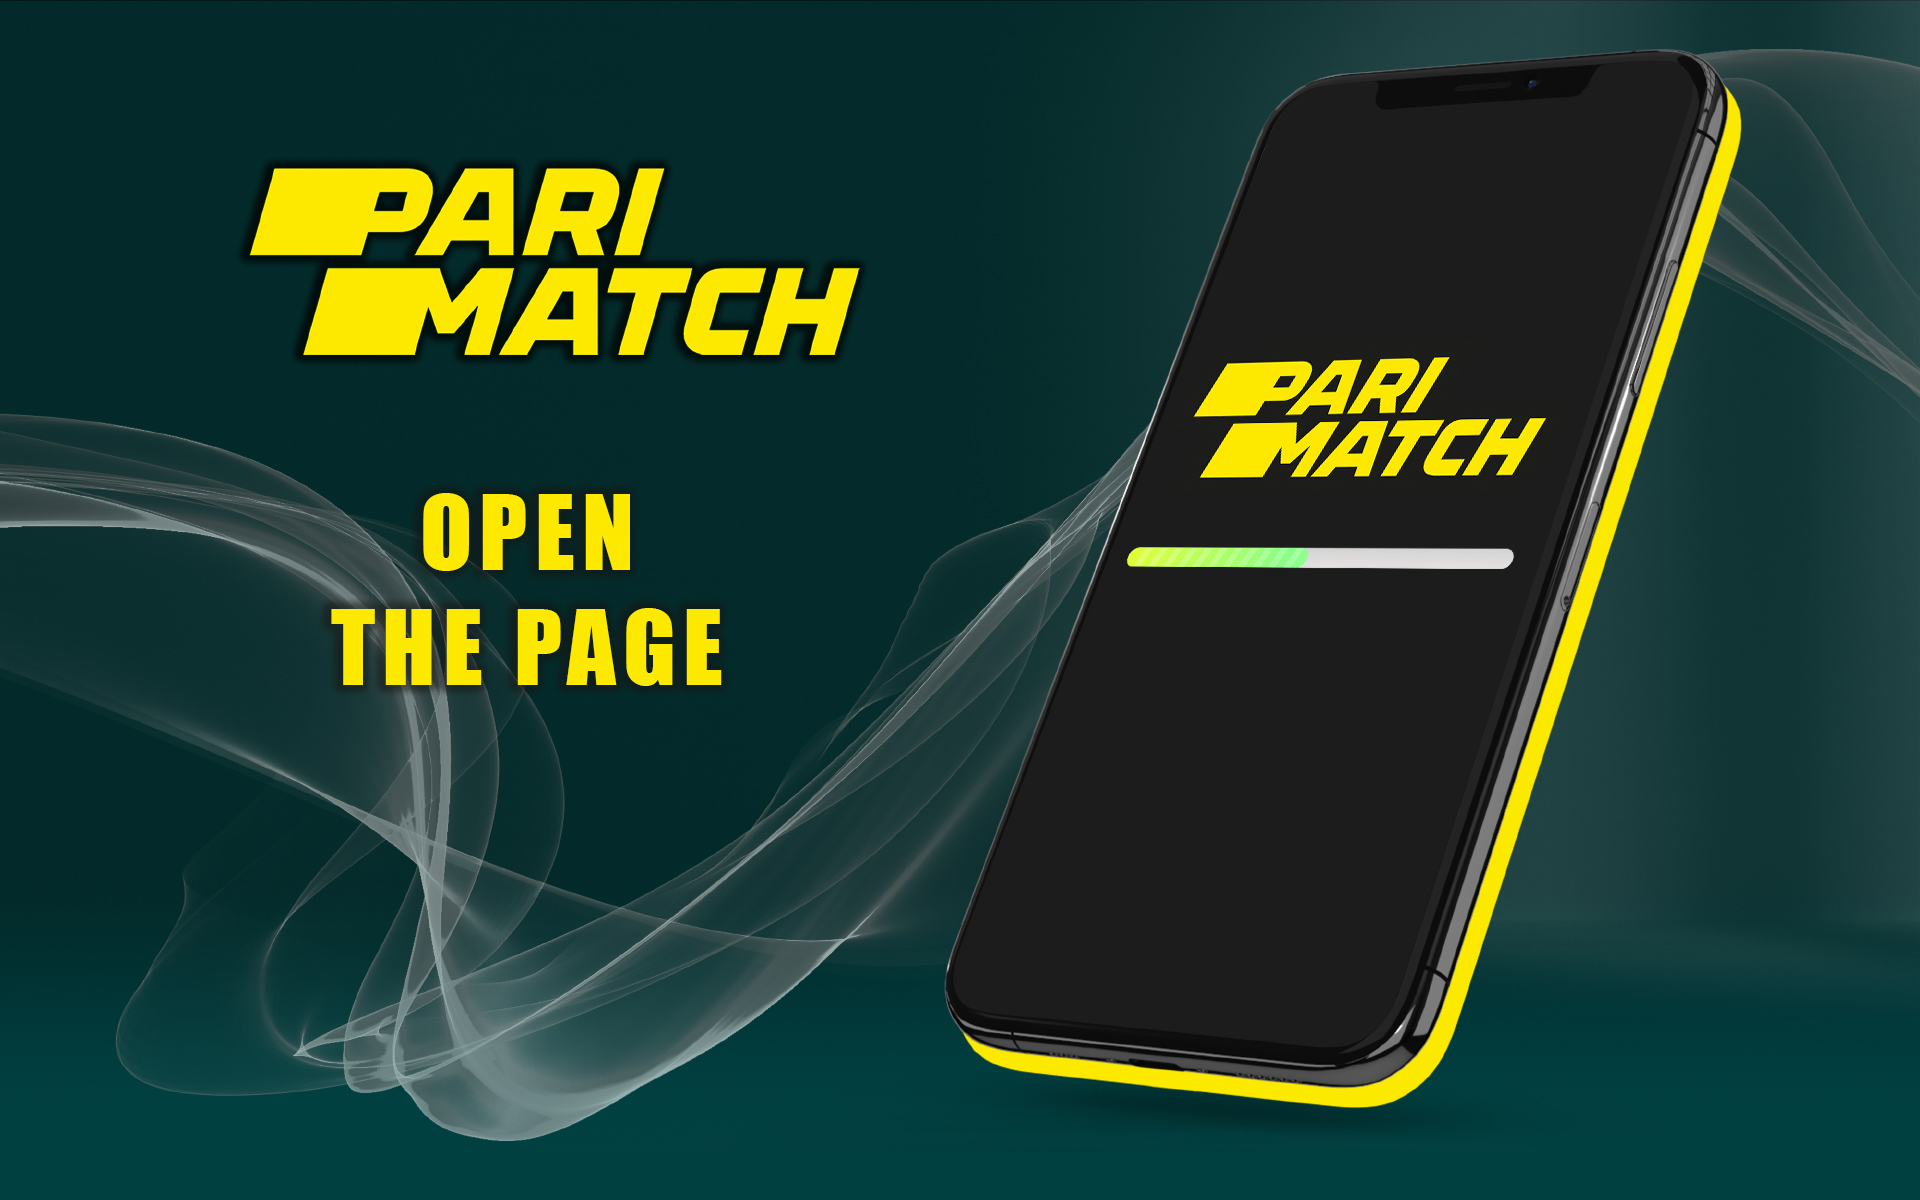 Go to the site of Parimatch India in your mobile browser.